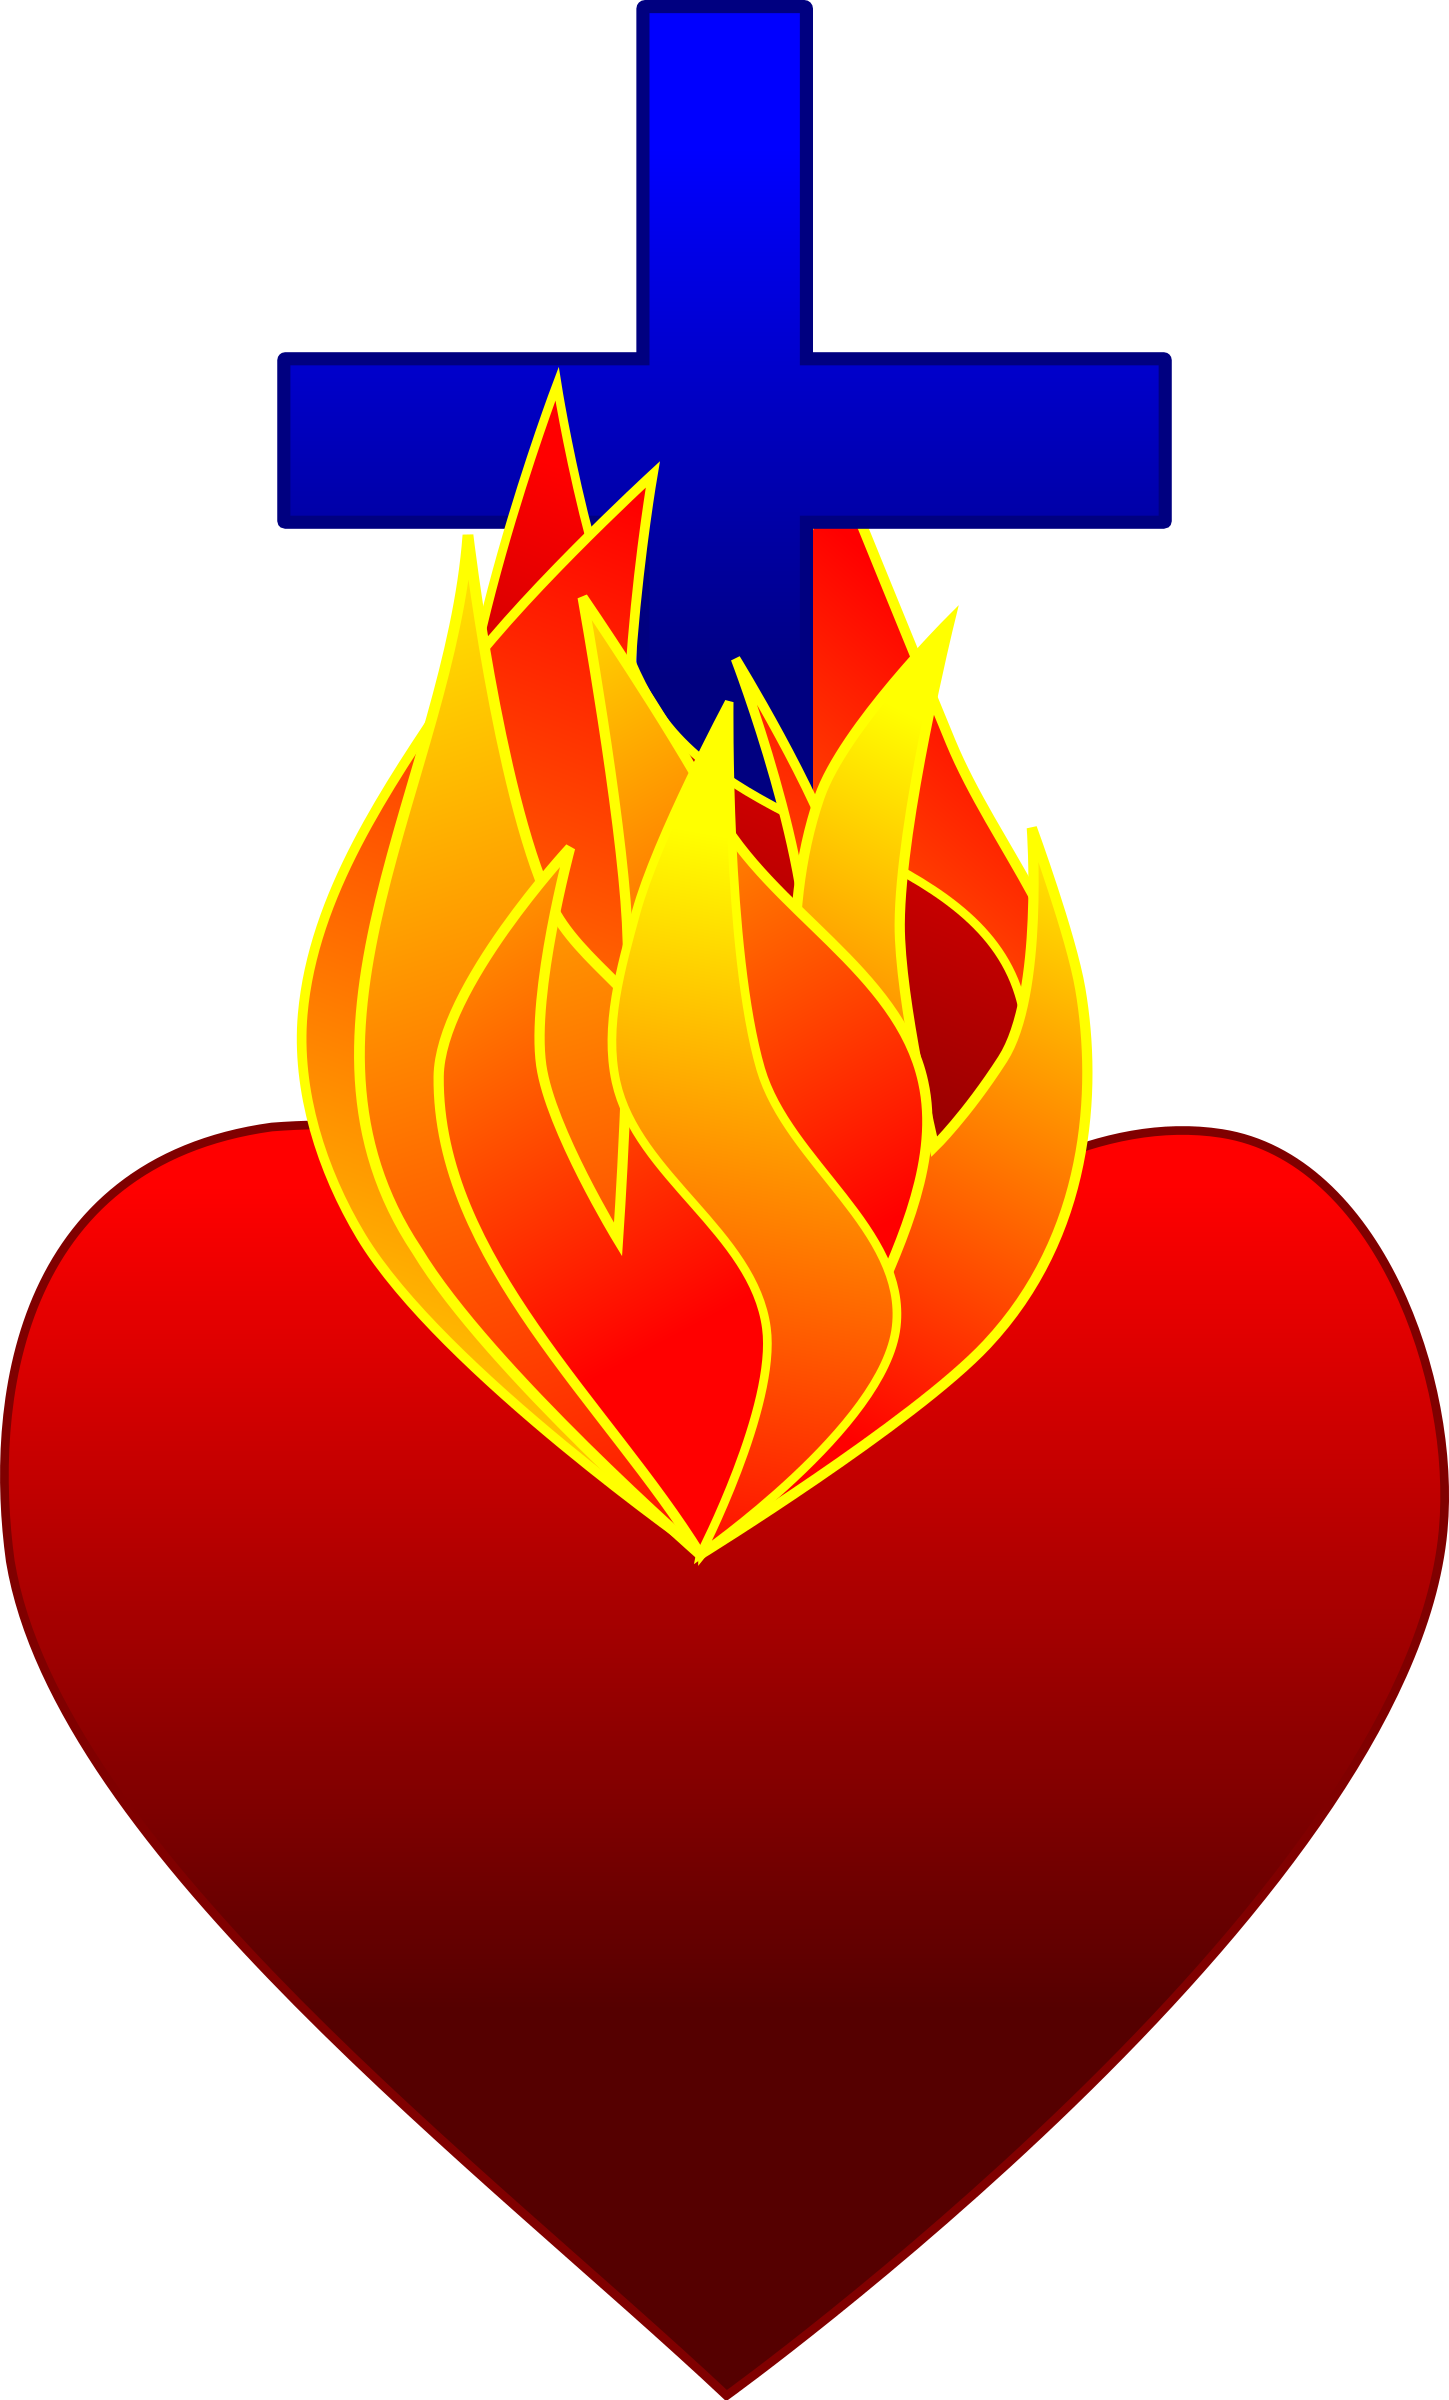 Flame heart clipart jpg freeuse library Fire · ClipartHot jpg freeuse library